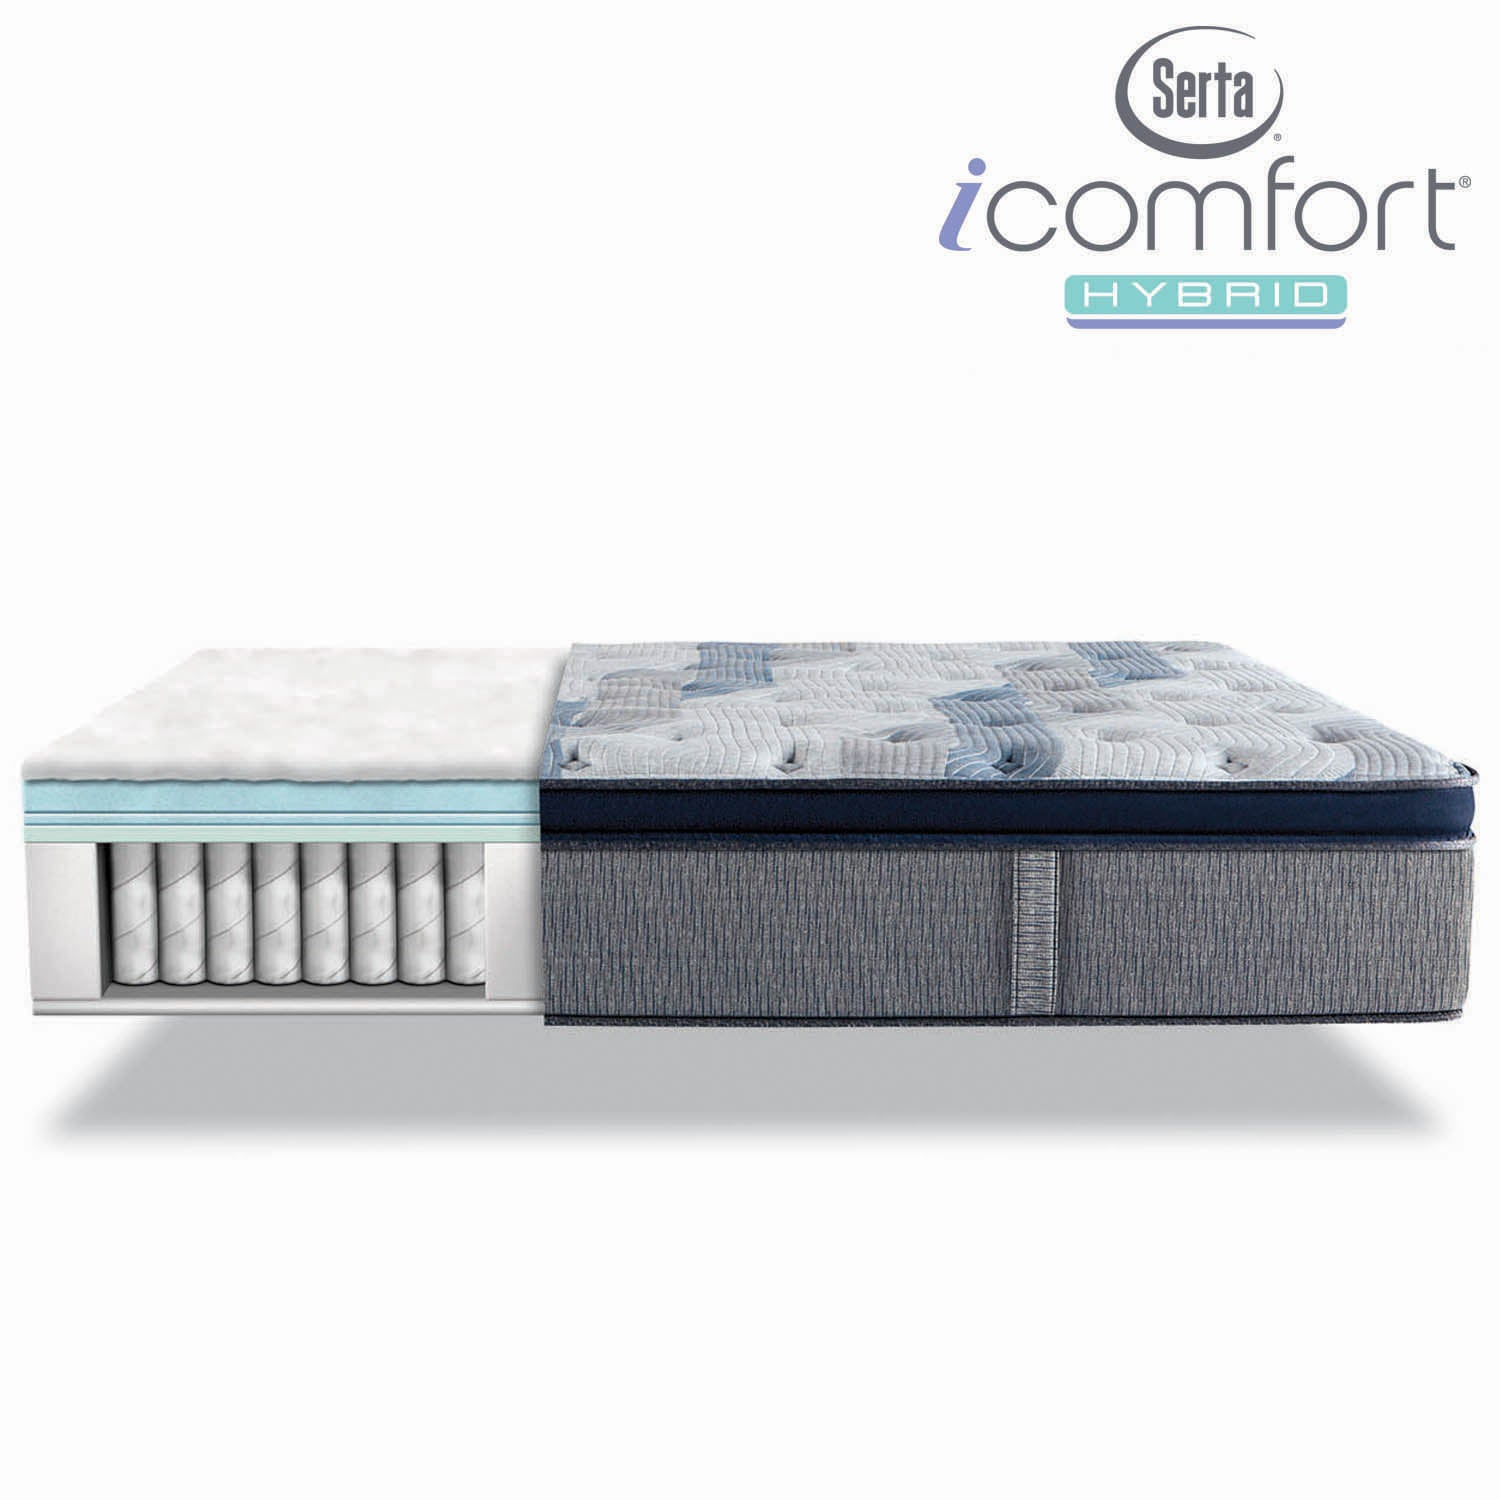 foam mattresses size beyond xl memory mattress amazon top and pad sealy of bed queen twin pillow full topper bath